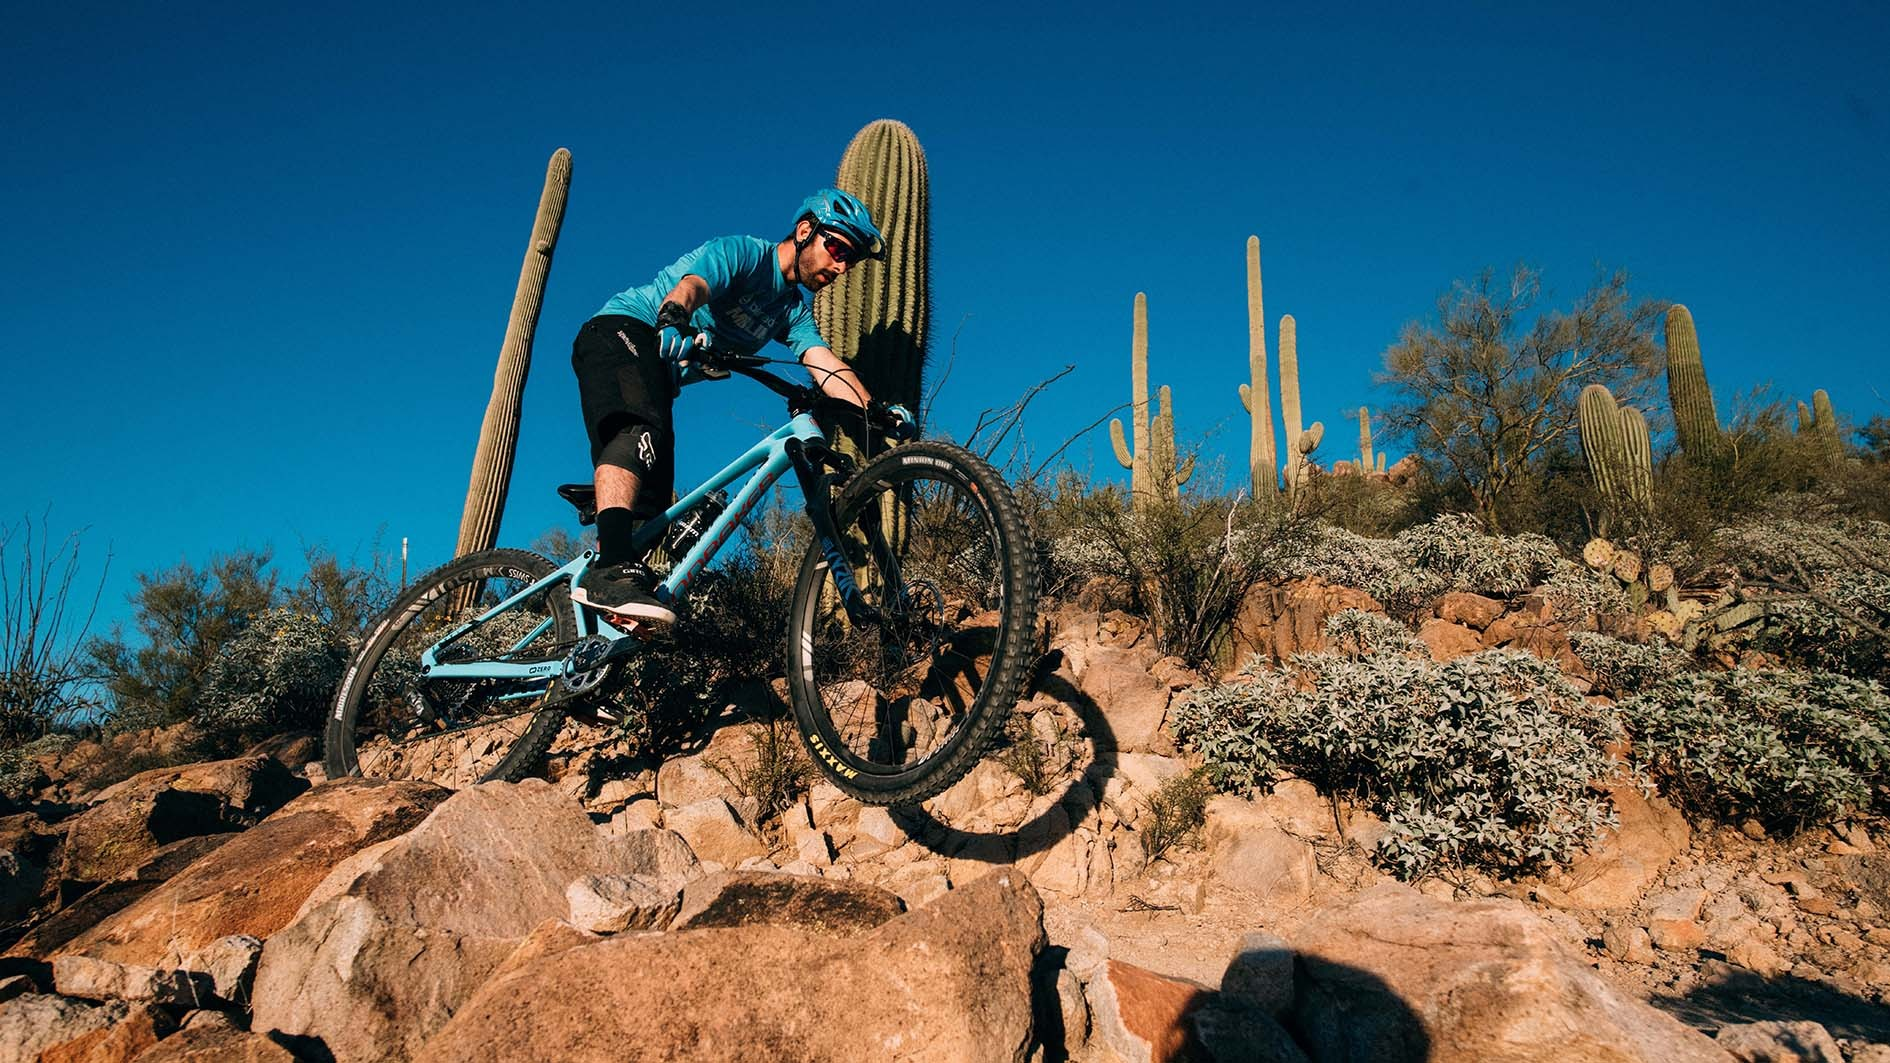 It was seriously rocky on the trail and on the final day, Rob smacked his derailleur into a rock but fortunately, the Overload Clutch did it's job and saved it and the shifting